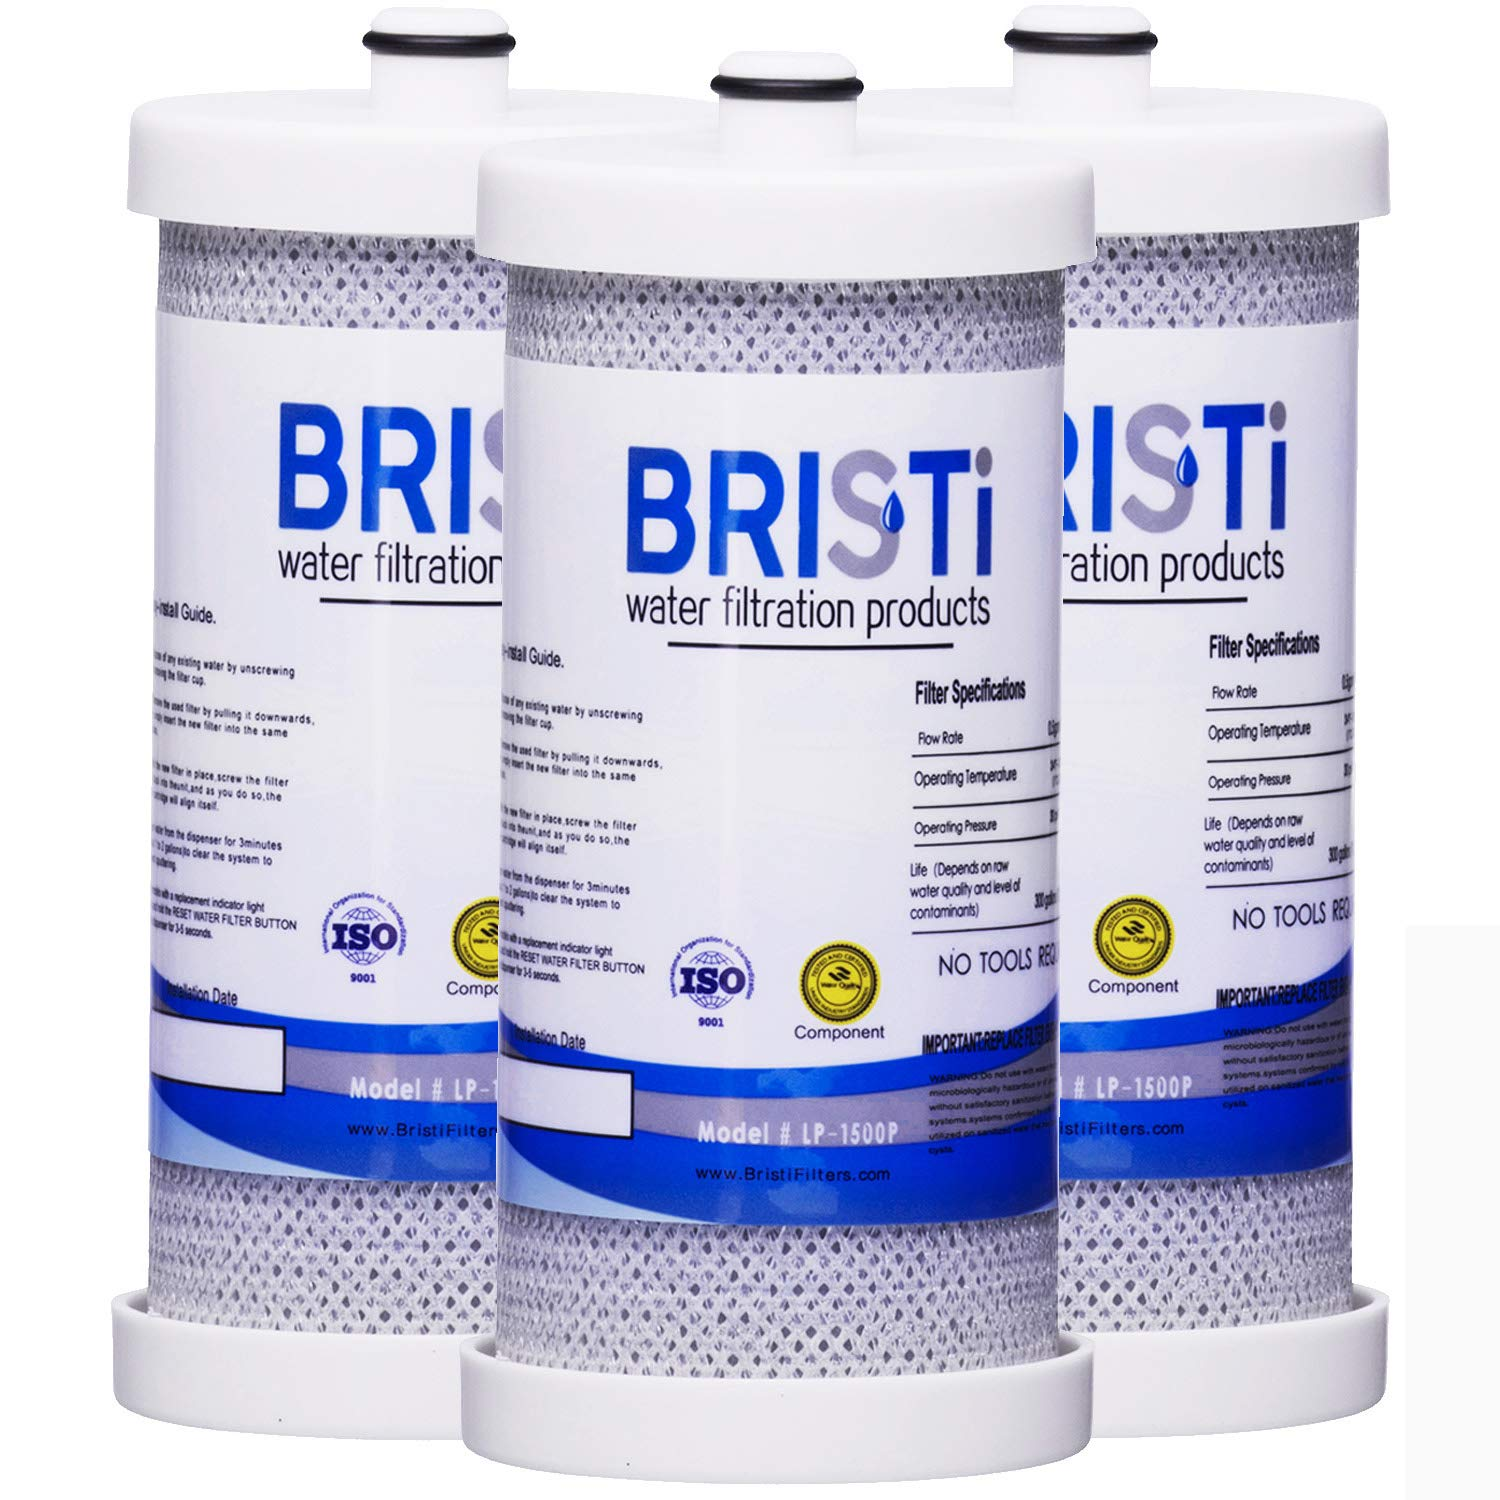 Bristi WF1CB Refrigerator Water Filter Replacement And Fits WFCB, RG 100, NGRG2000, RF-100, RG100, NGRG-2000, 9910, 46-9910 (3 Pack)